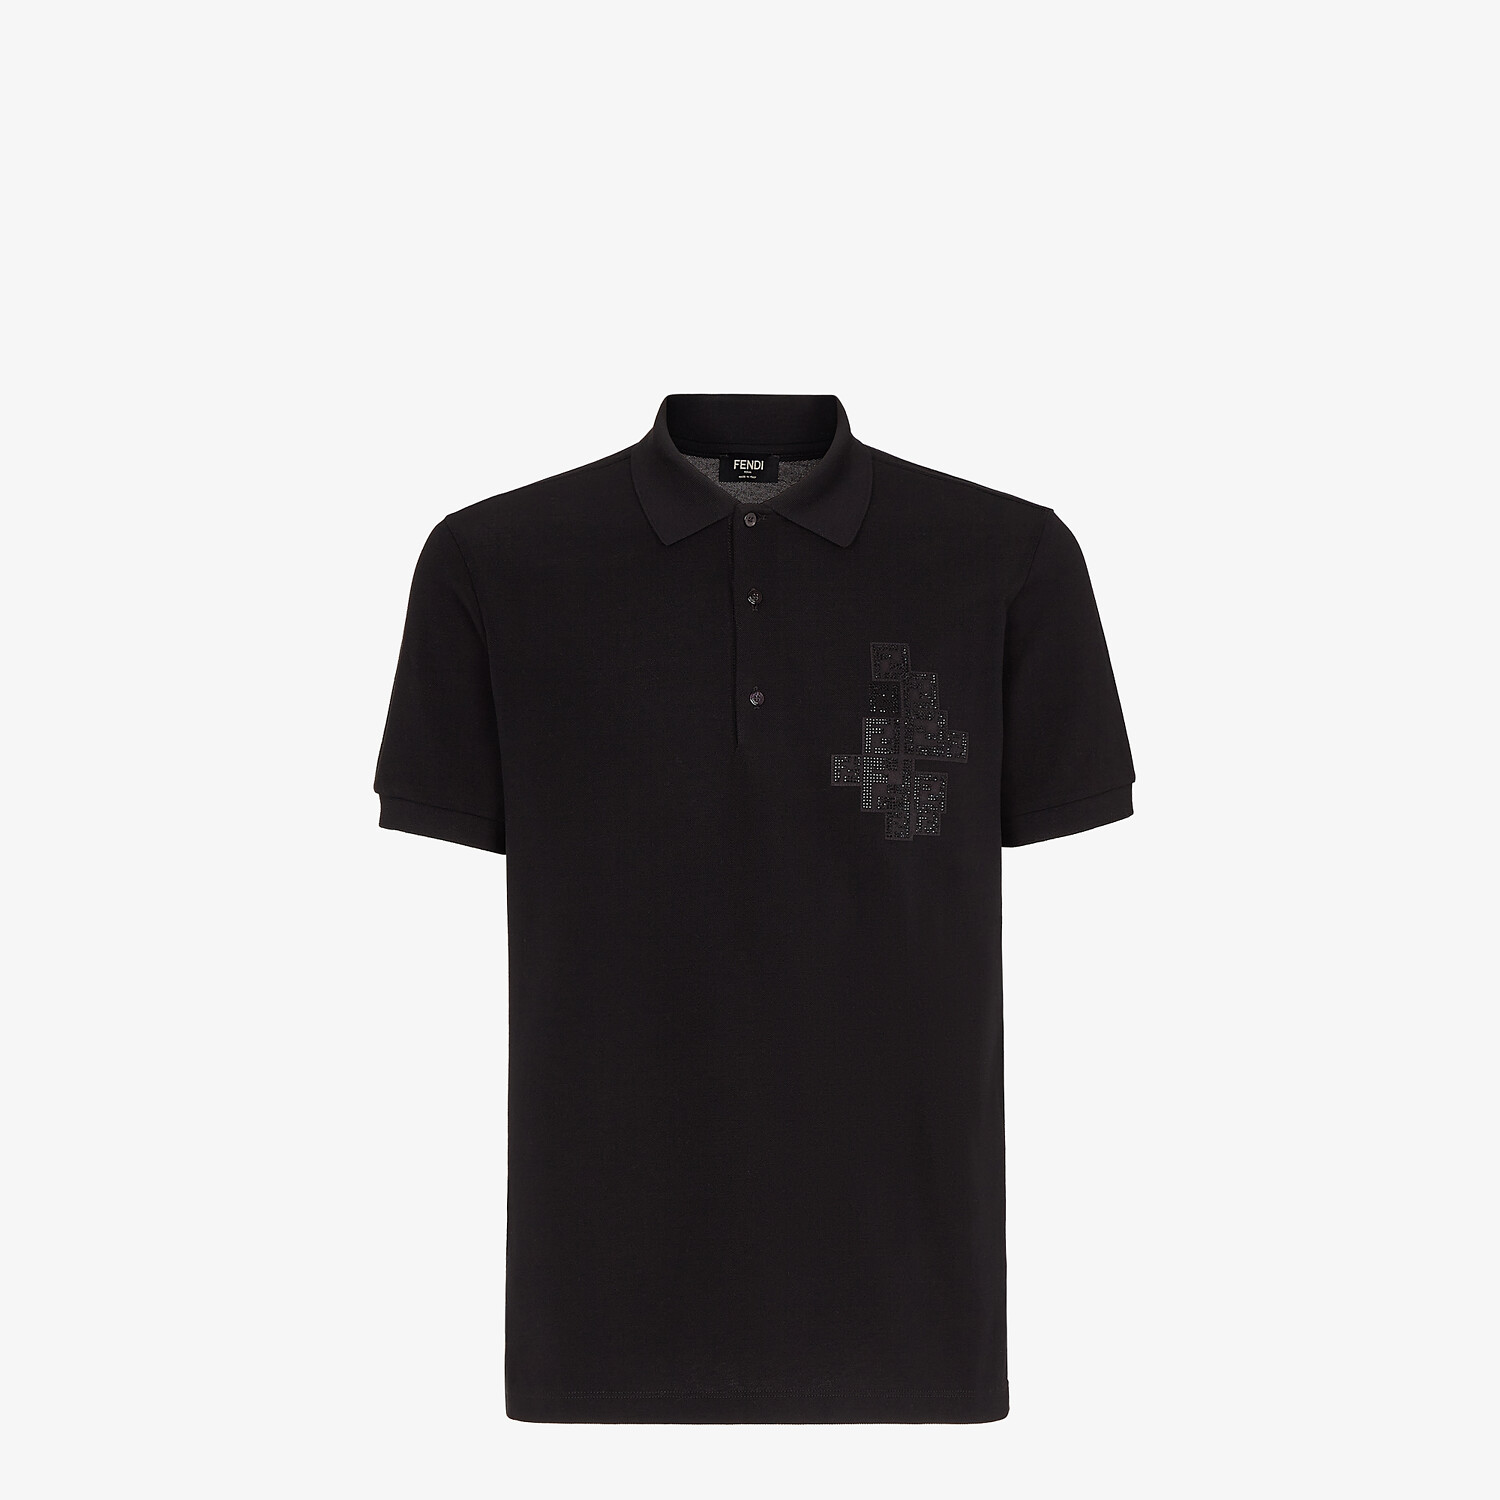 FENDI POLO SHIRT - Black cotton polo shirt - view 1 detail